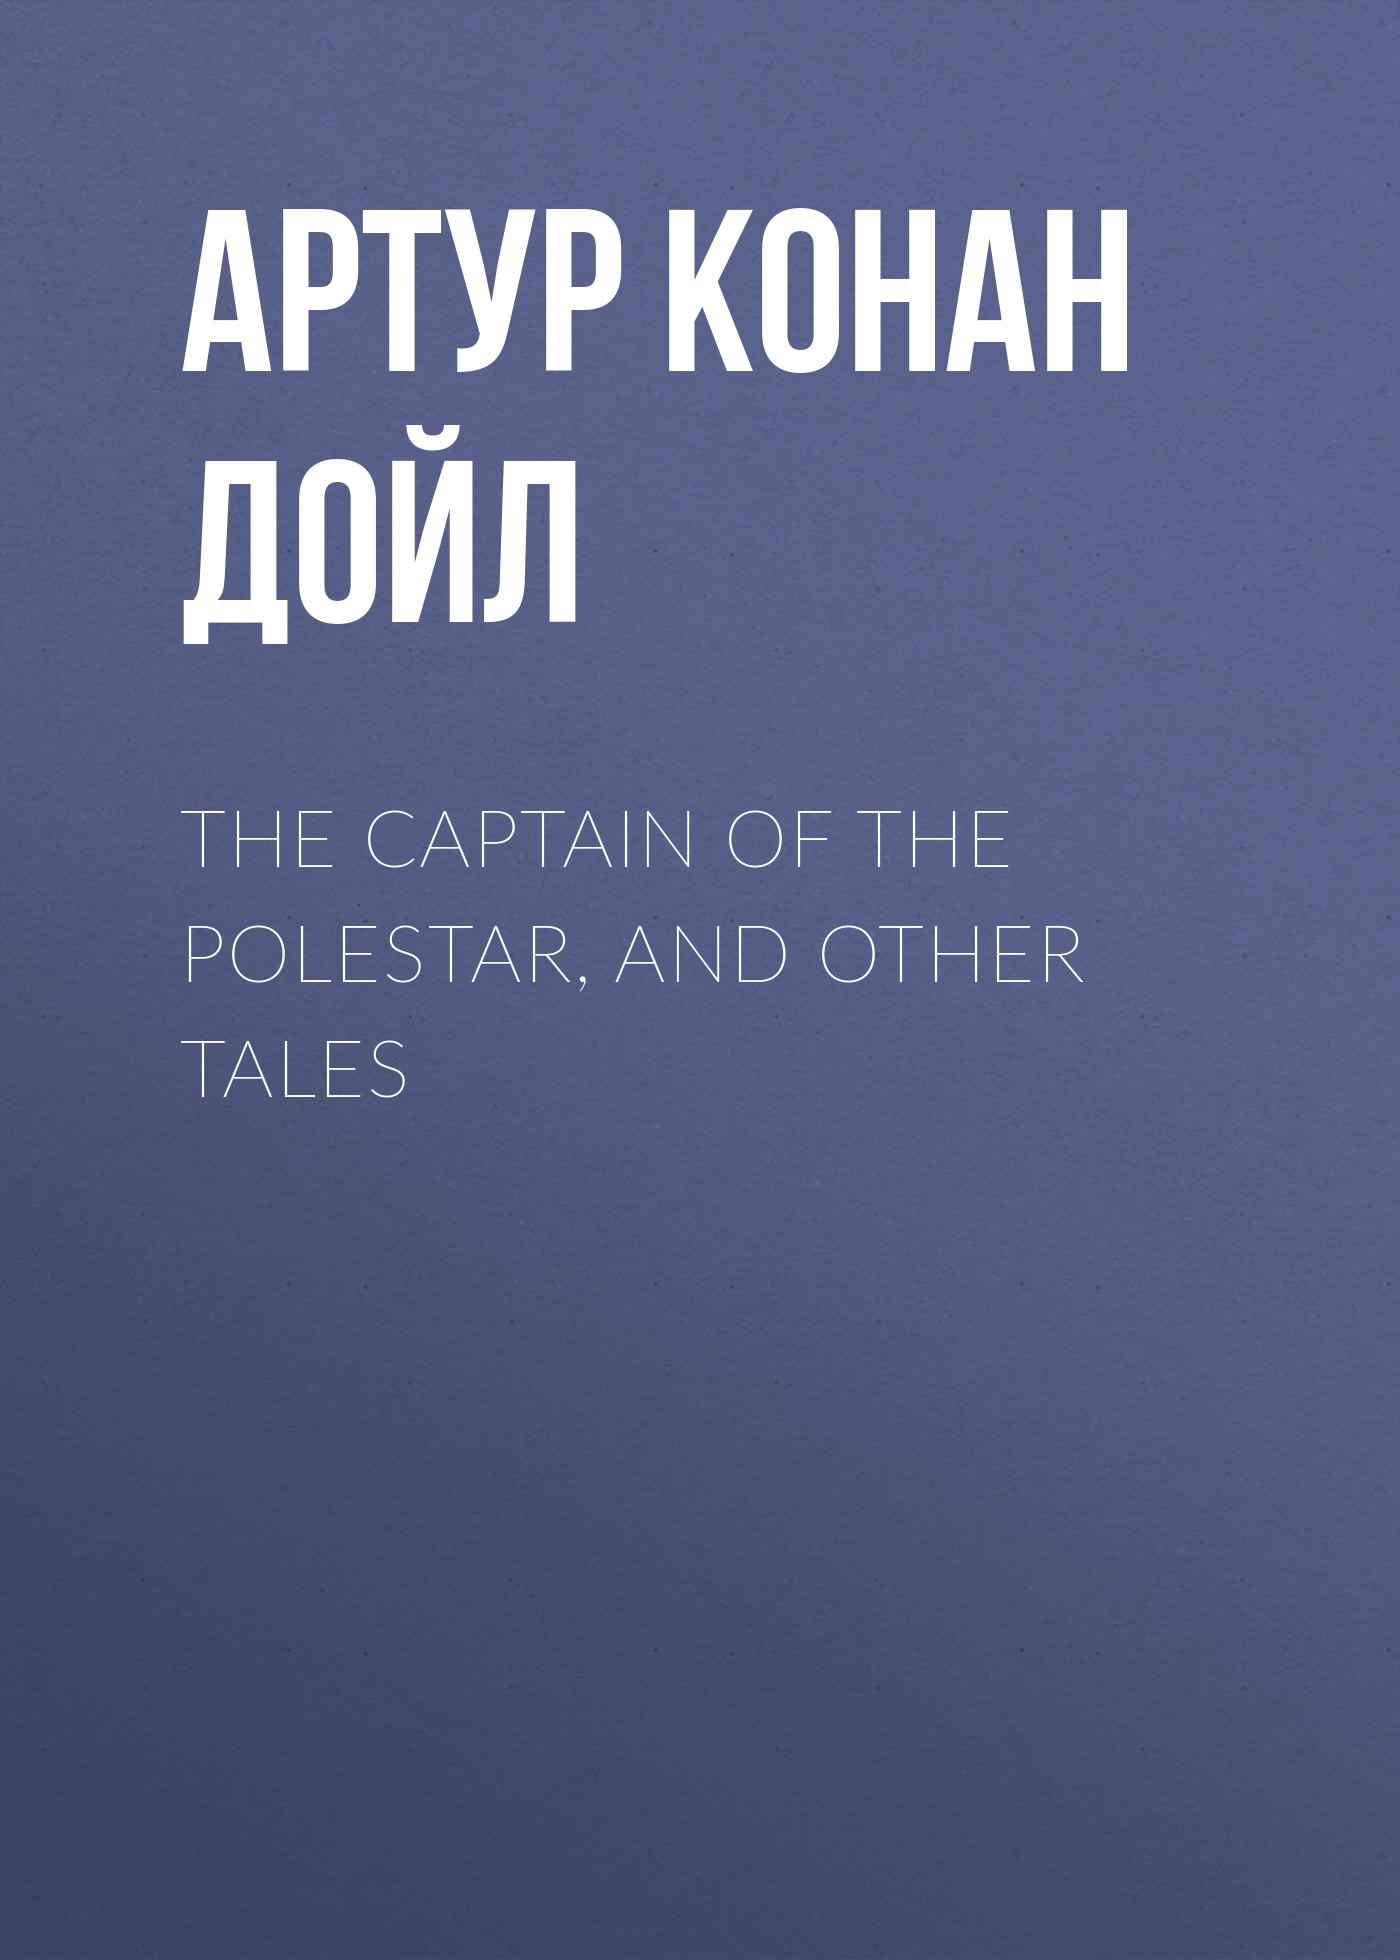 Артур Конан Дойл The Captain of the Polestar, and Other Tales артур конан дойл the firm of girdlestone